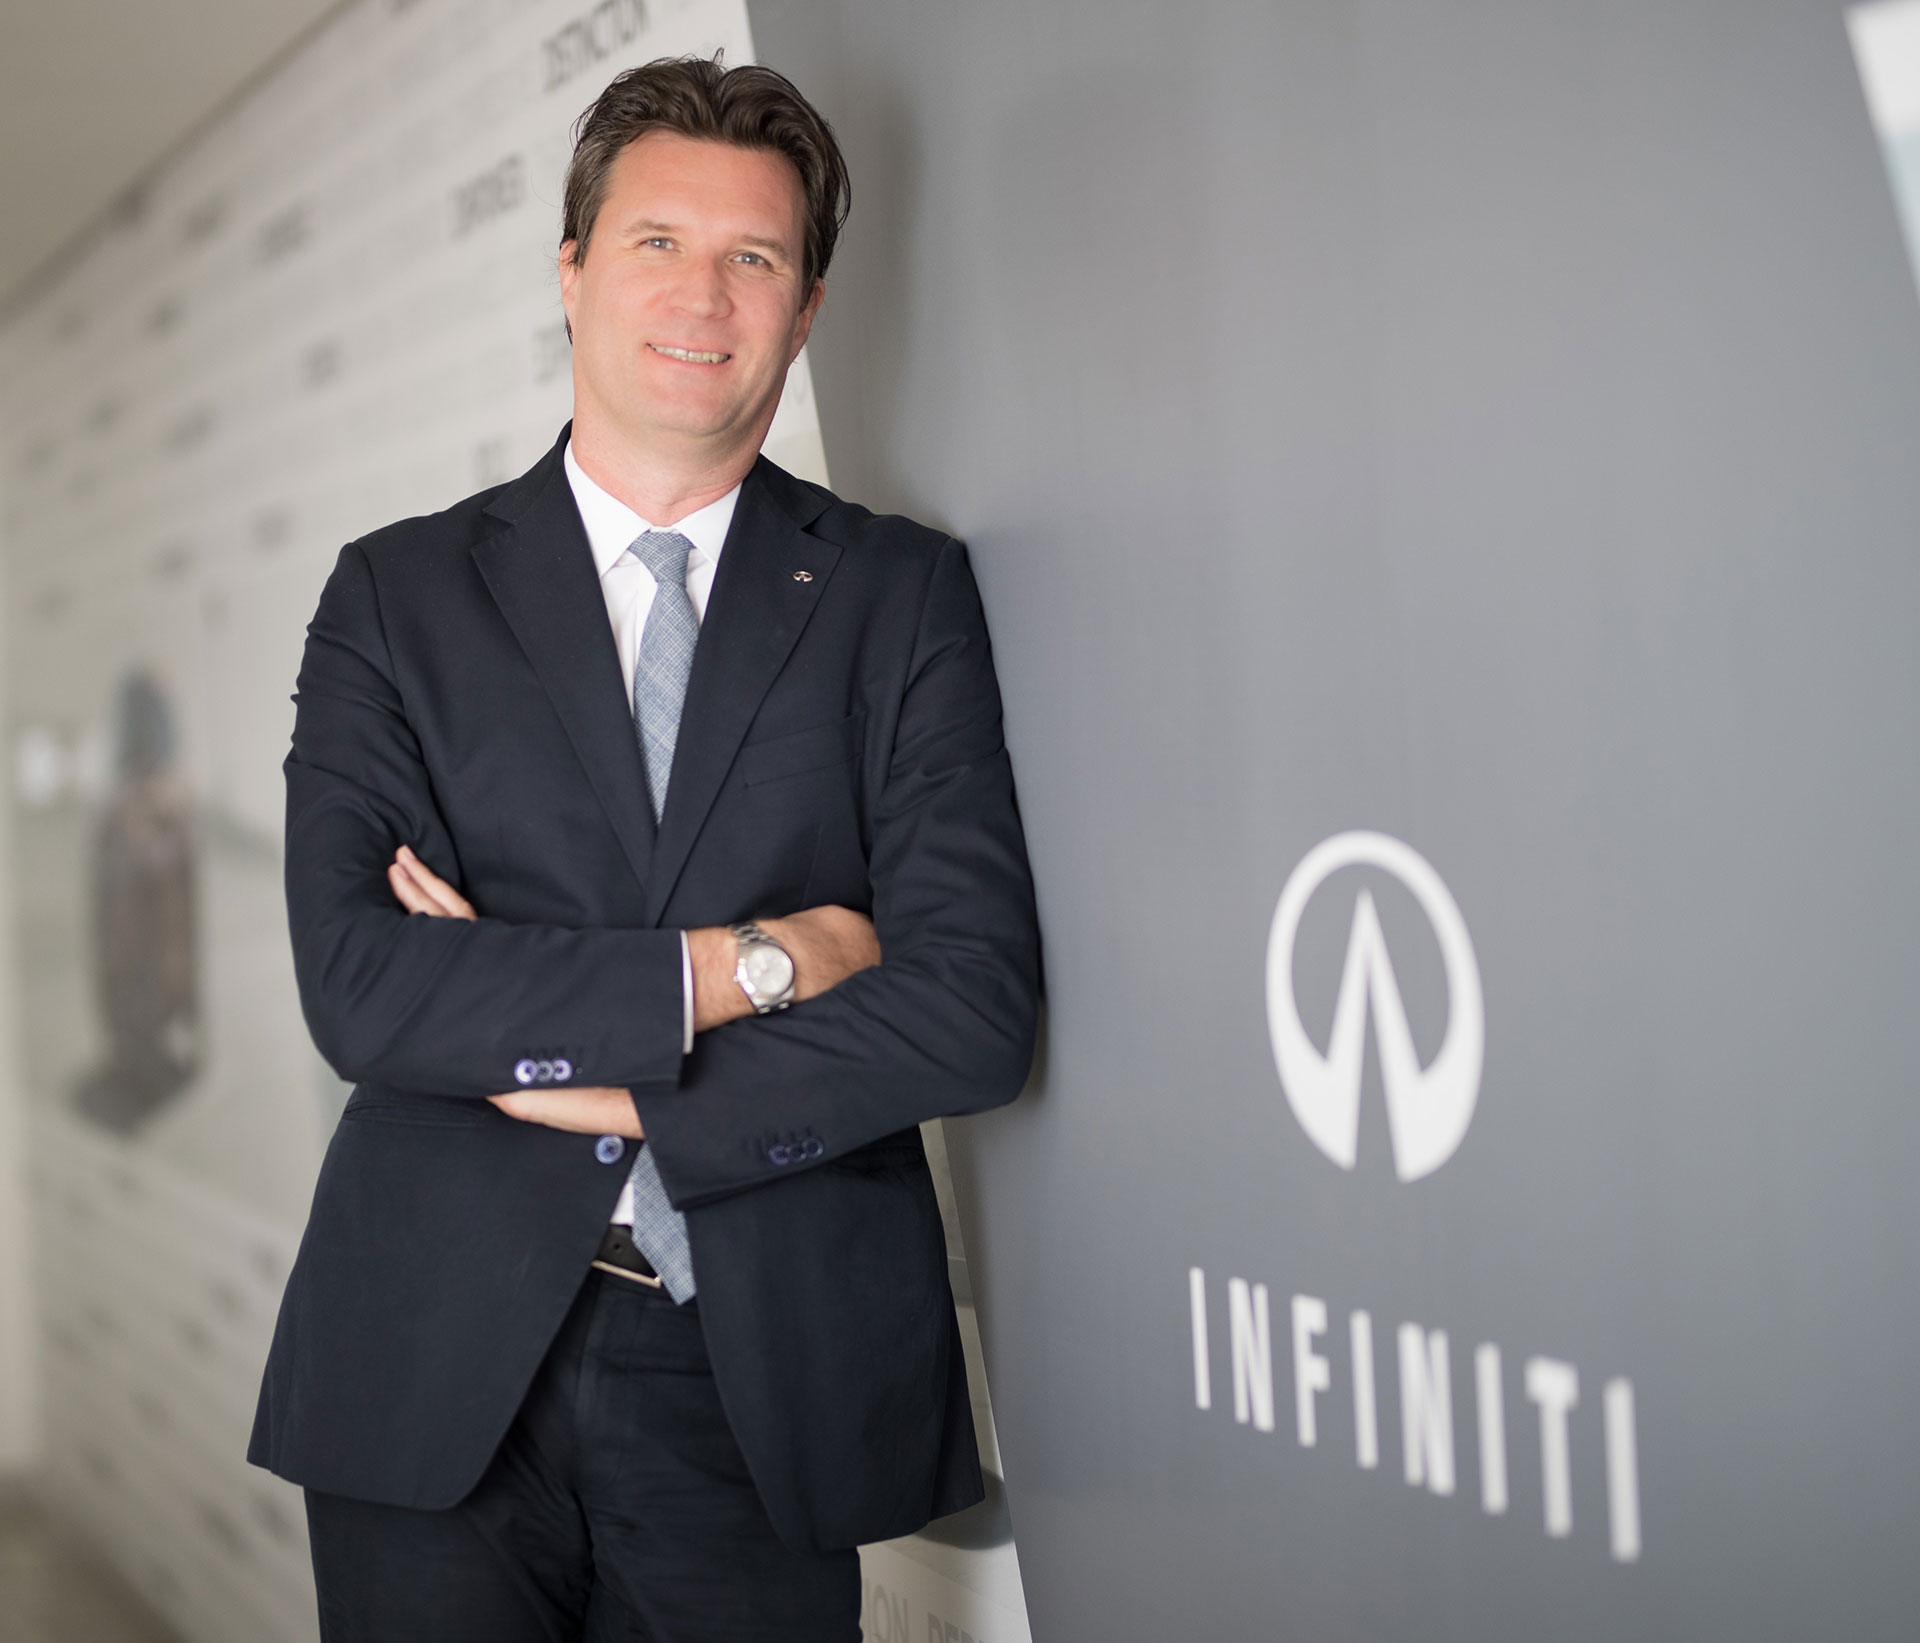 Markus-Leithe---Managing-Director-of-INFINITI-Middle-East